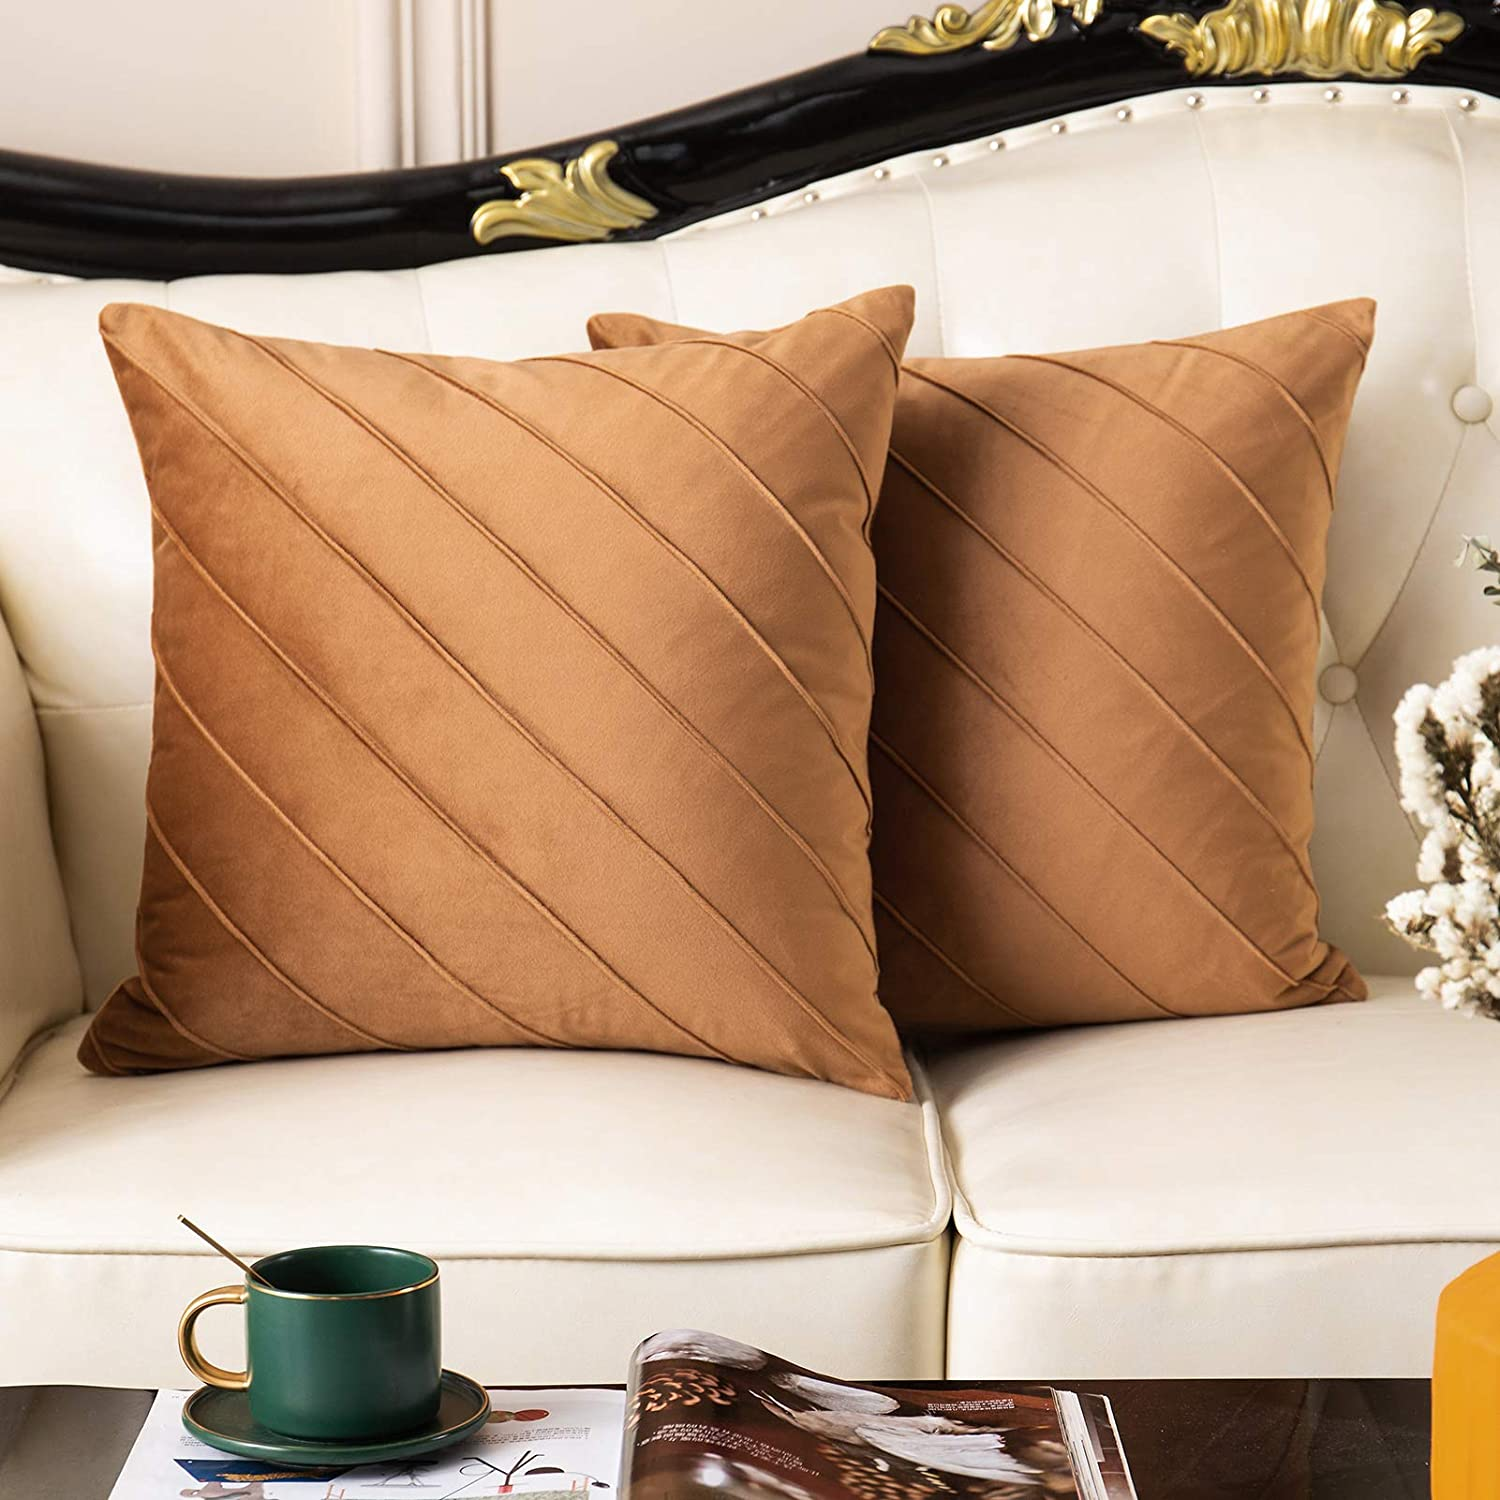 Selling and selling Lipo Velvet Throw Pillow Covers Square Solid Outlet ☆ Free Shipping Pil Soft Decorative